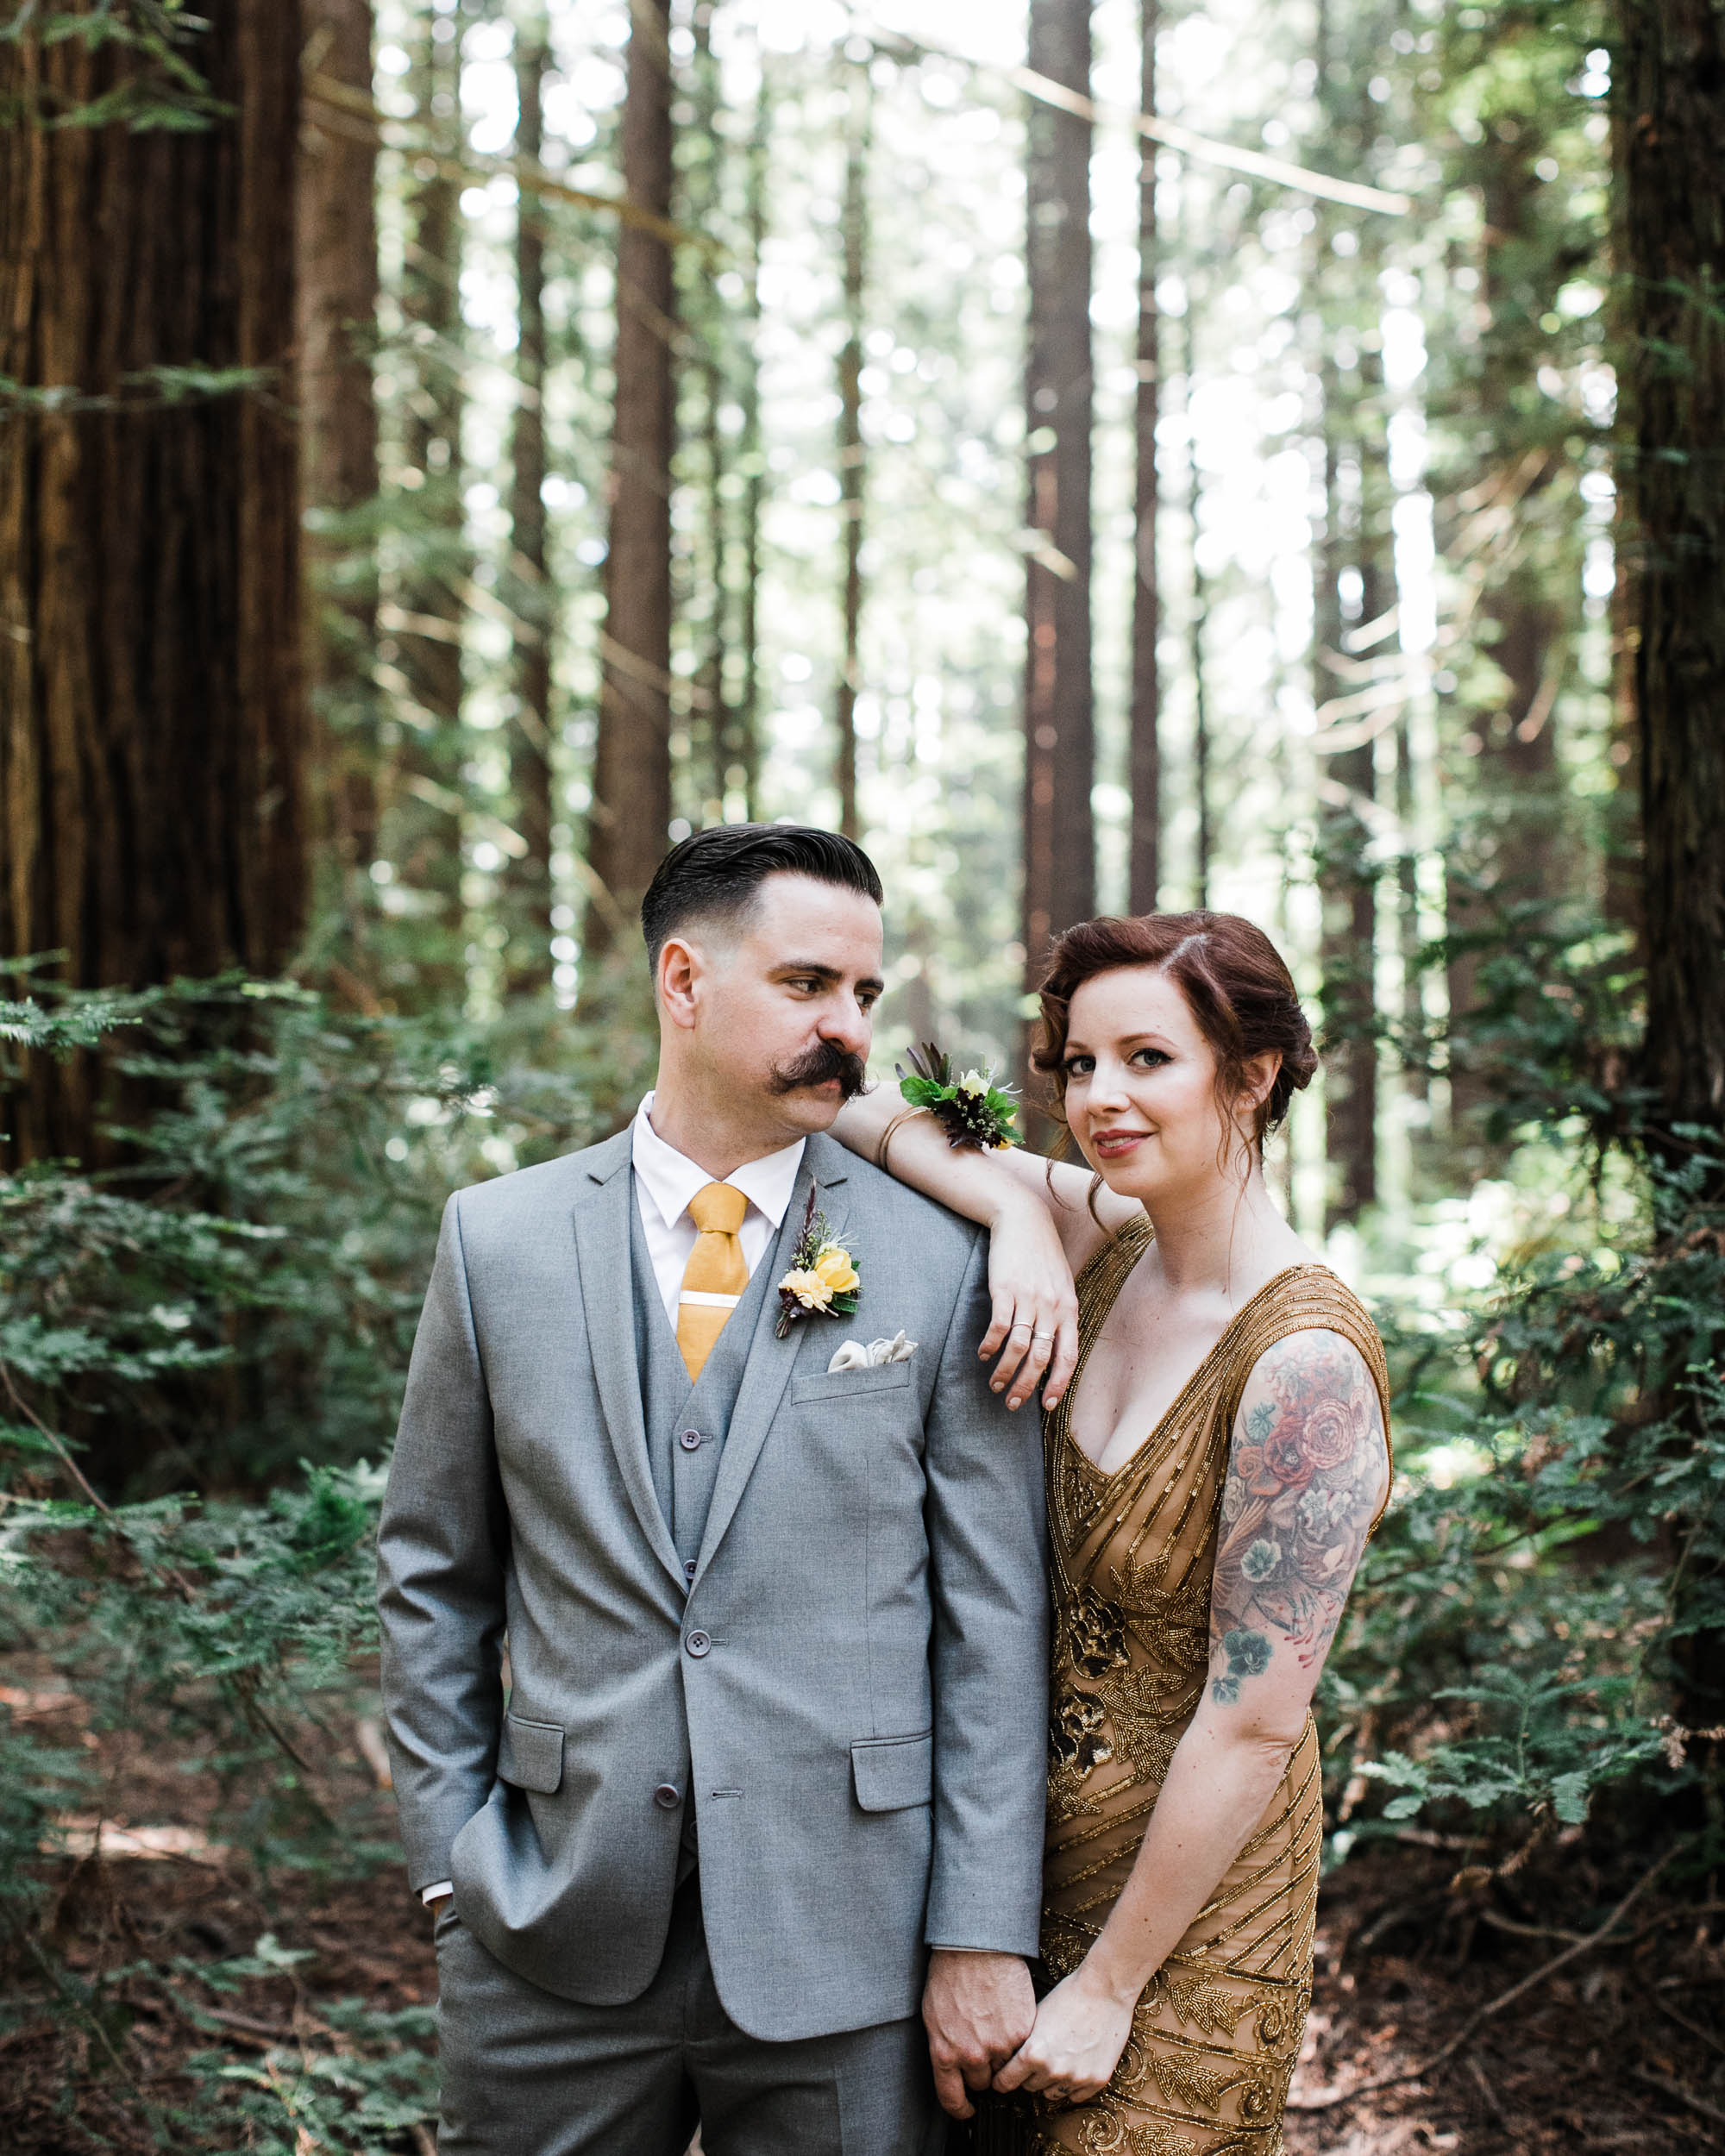 050418_J+S_Redwoods Elopement_Buena Lane Photography_0224.jpg